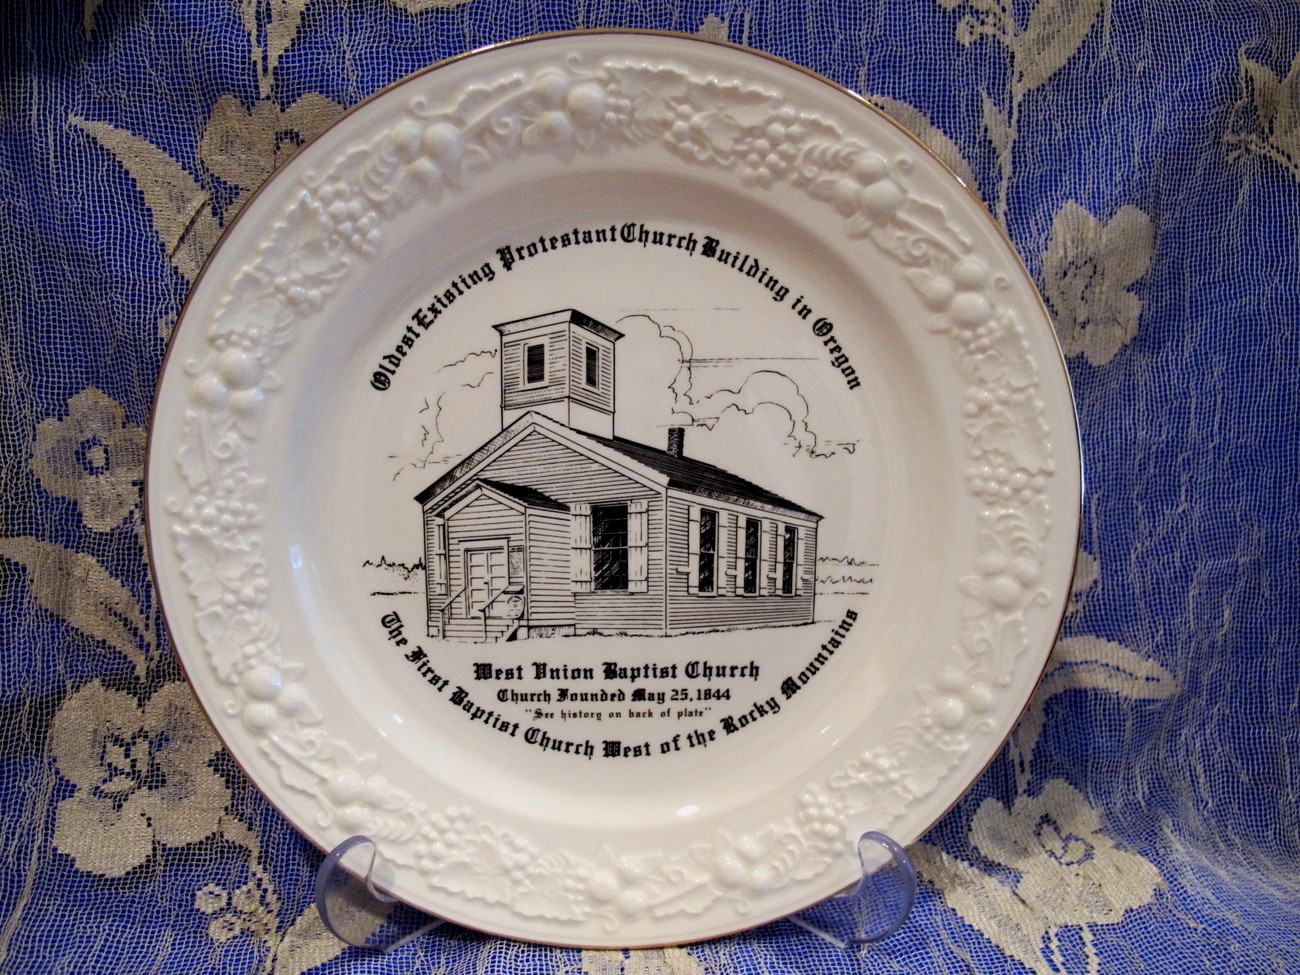 West Union Baptist Church Oregon Souvenir Collector Plate Vintage Collectible